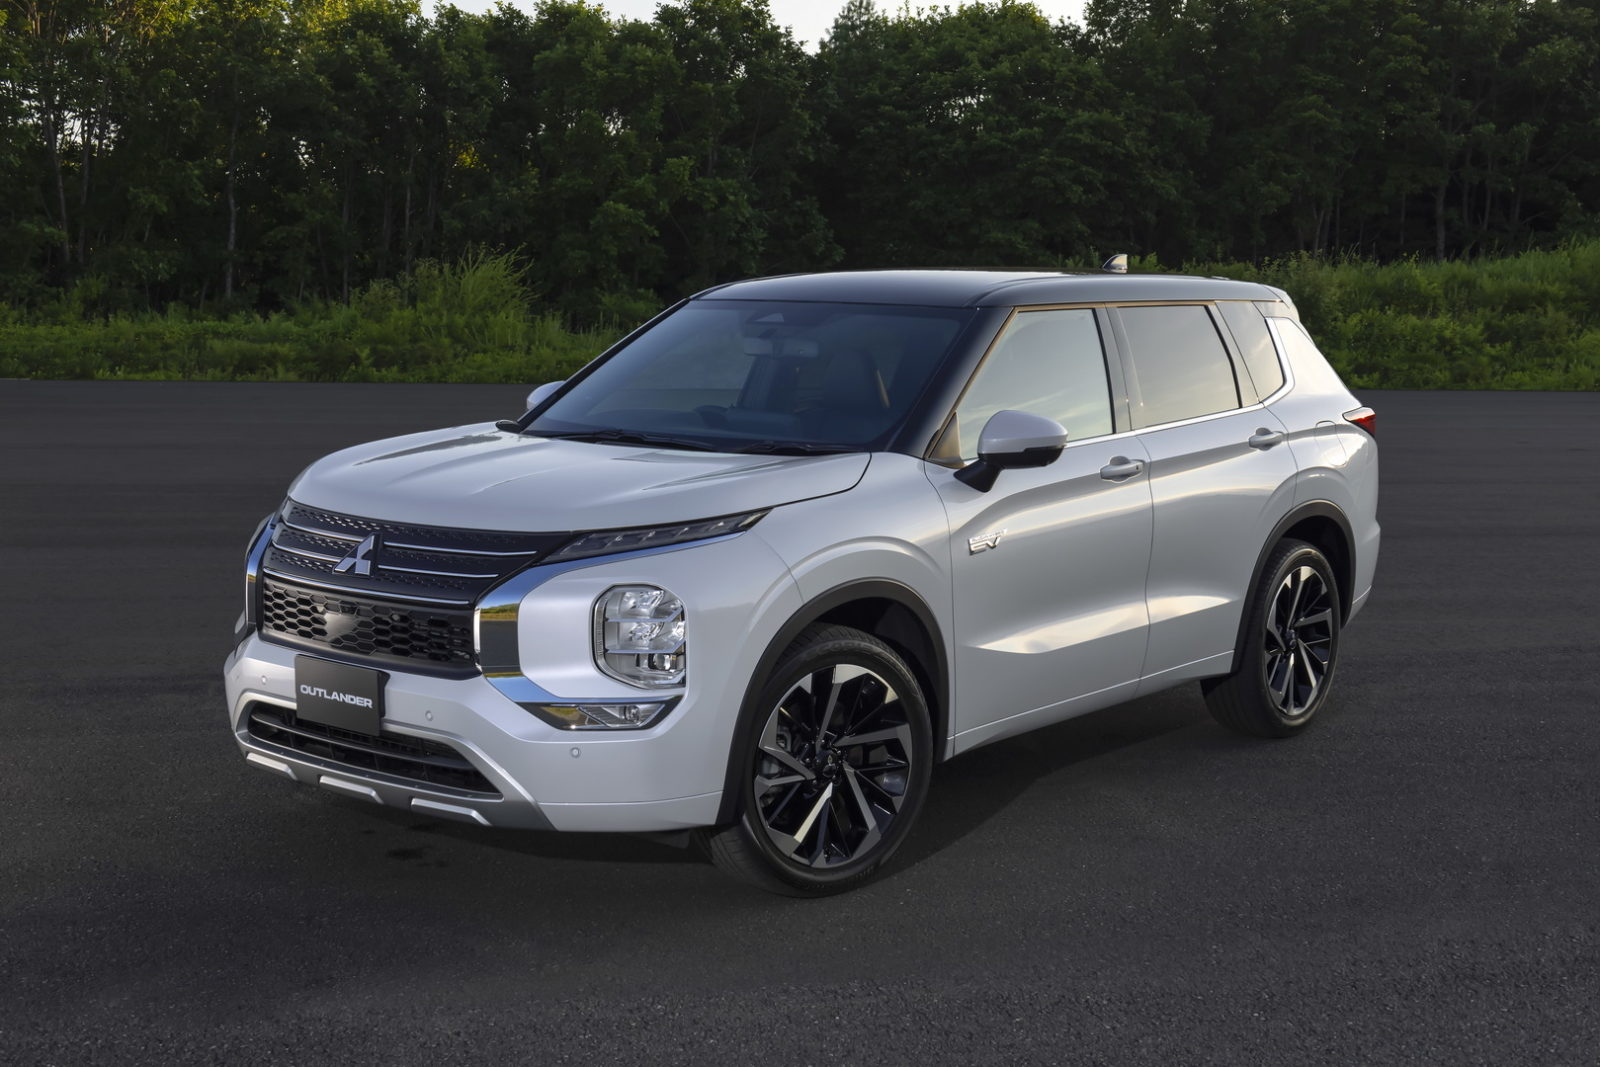 all-new-mitsubishi-outlander-phev-revealed-ahead-of-october-28-world-premiere